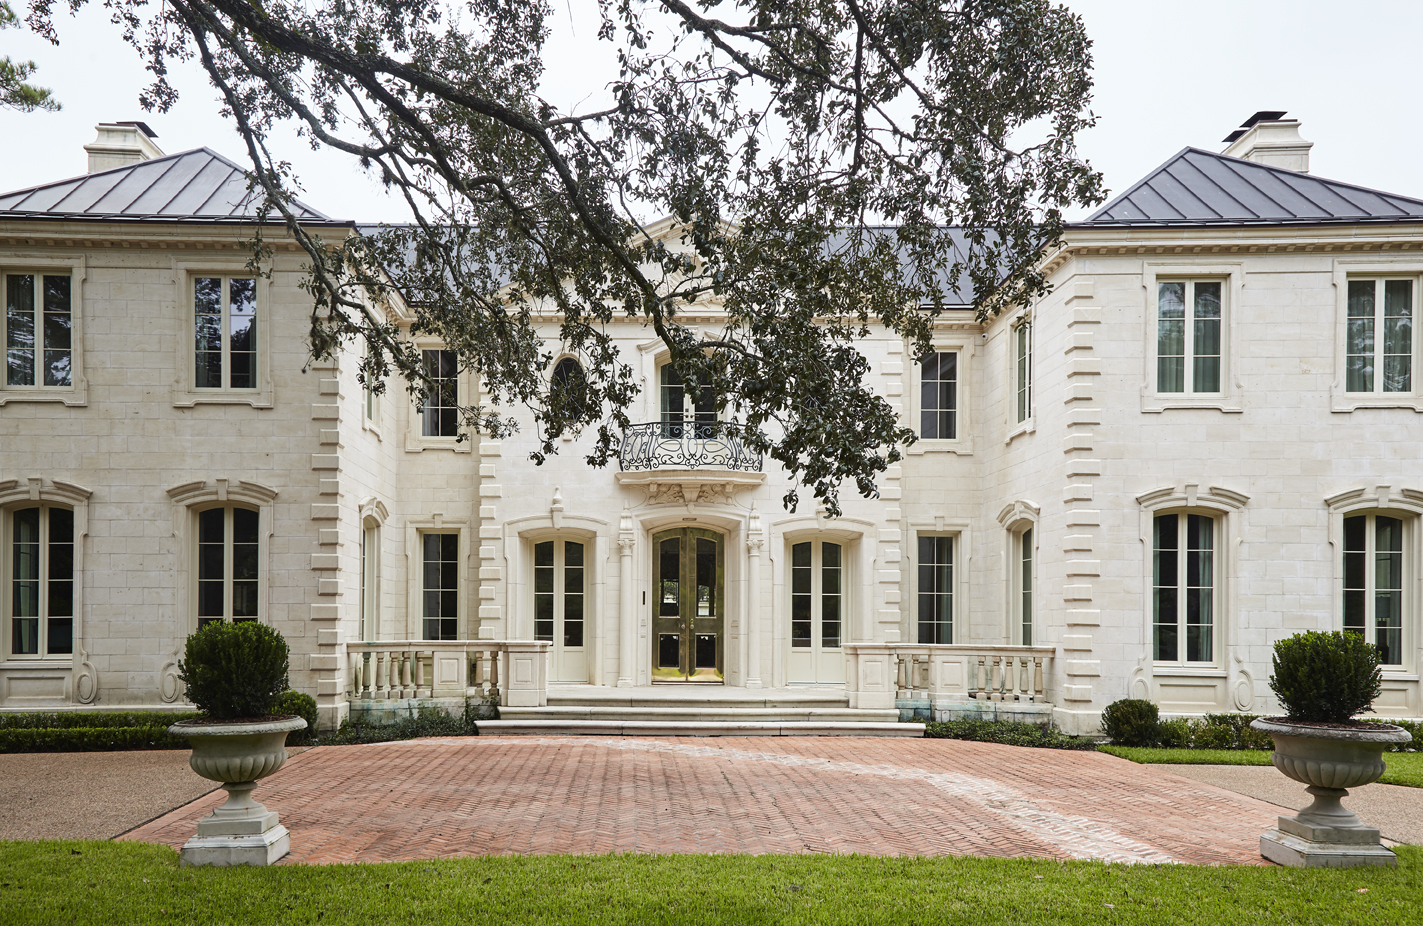 Built in 1965, the exterior of the home was modeled after the Baroque pavilions outside Paris, like the Grand Trianon, King Louis XIV's Versailles retreat that was intended to house the king and his mistress. Because the garage of the original property had been impractically positioned and was seldom used, it wasremodeled to serve as a morning room and mudroom on the first floor, and a master bath and dressing area on the second floor.